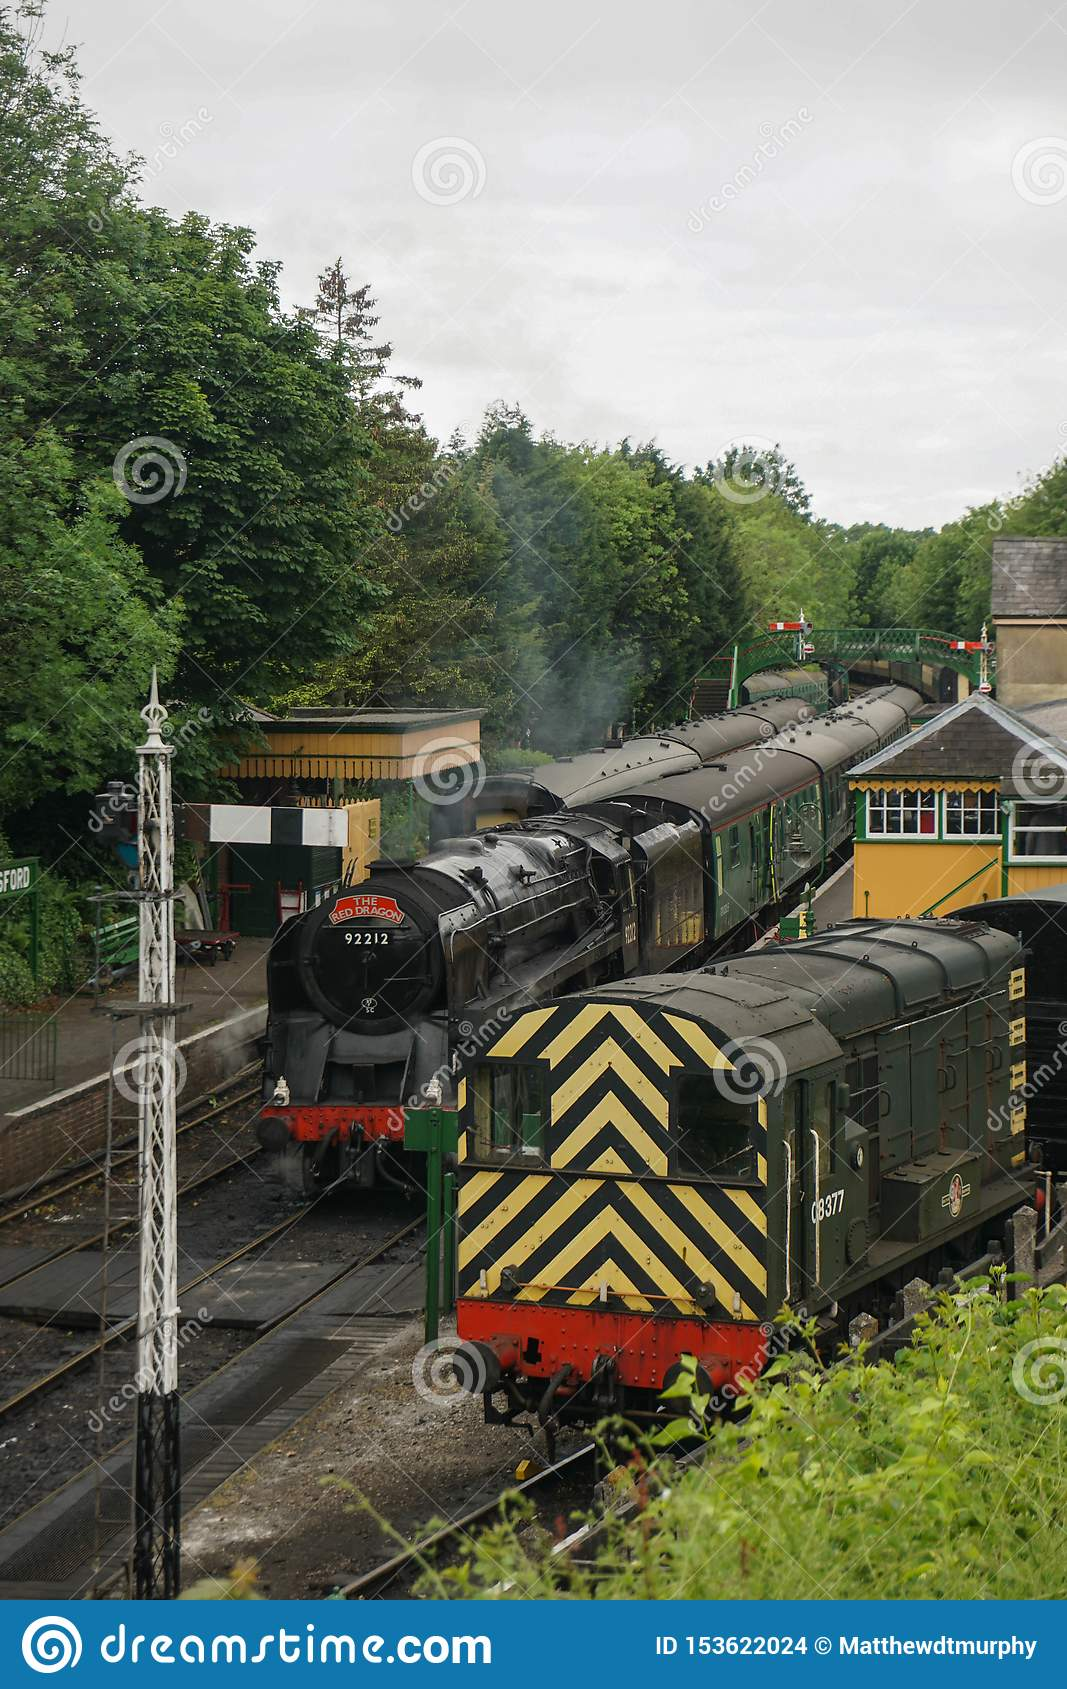 Mid Hants steam railway